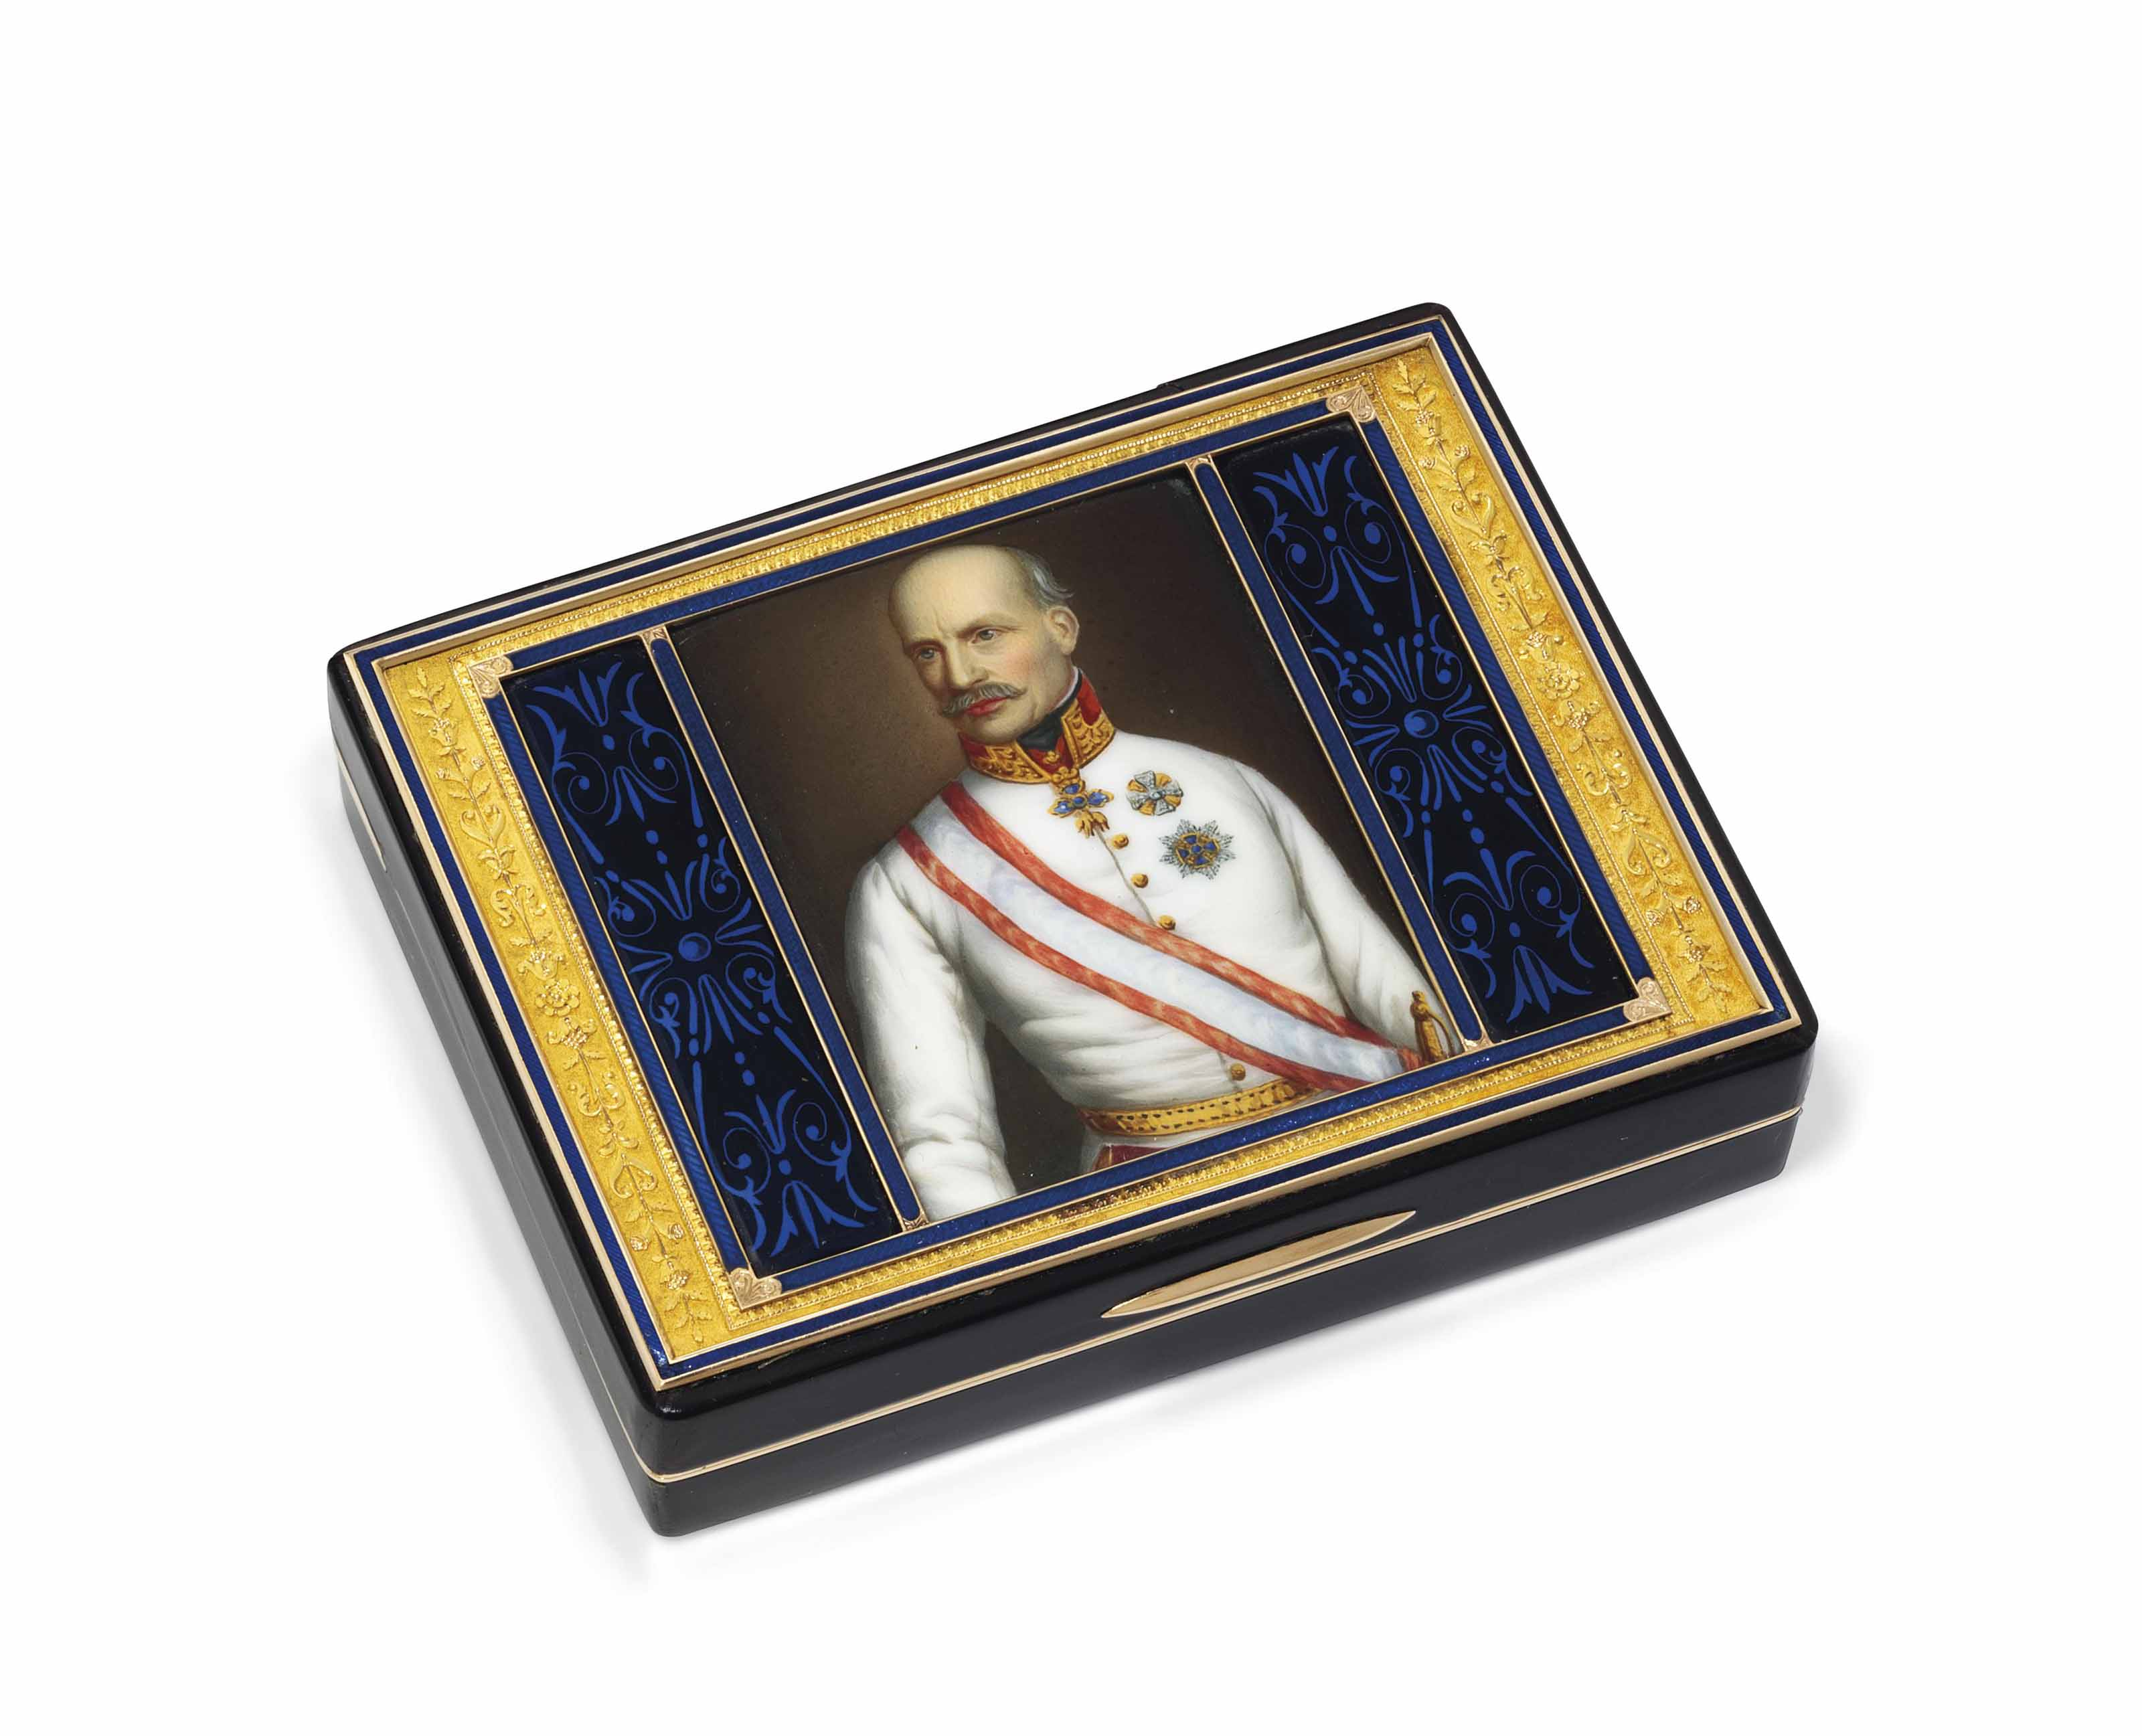 A FRENCH GOLD-LINED TORTOISESHELL PRESENTATION SNUFF-BOX SET WITH A PORCELAIN PLAQUE